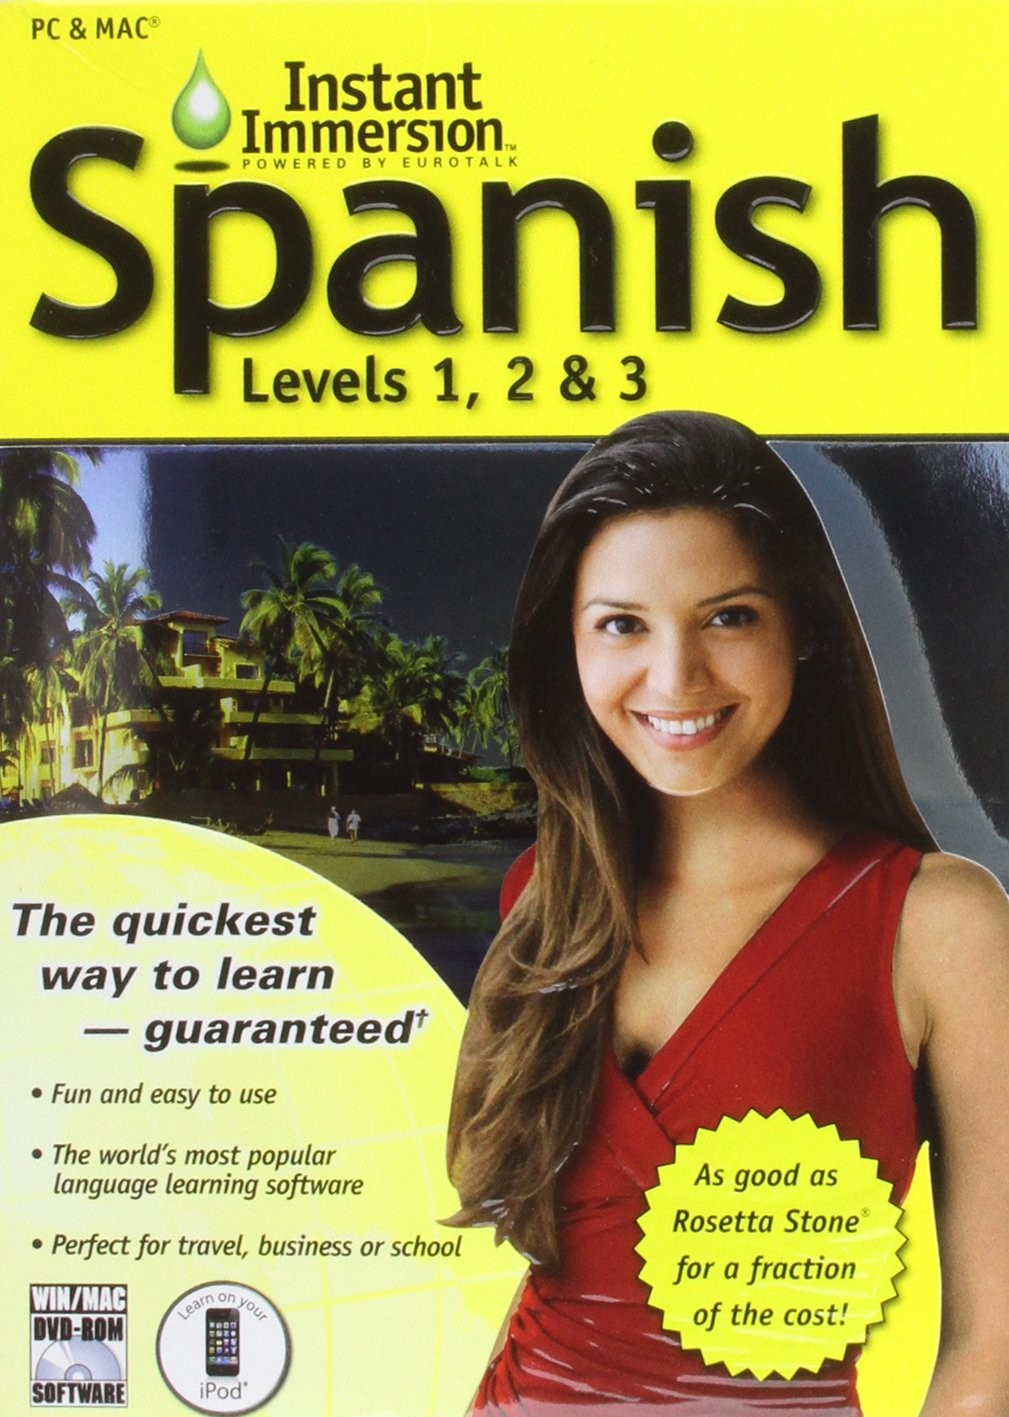 The best methods to learning a language | Erasmus tips